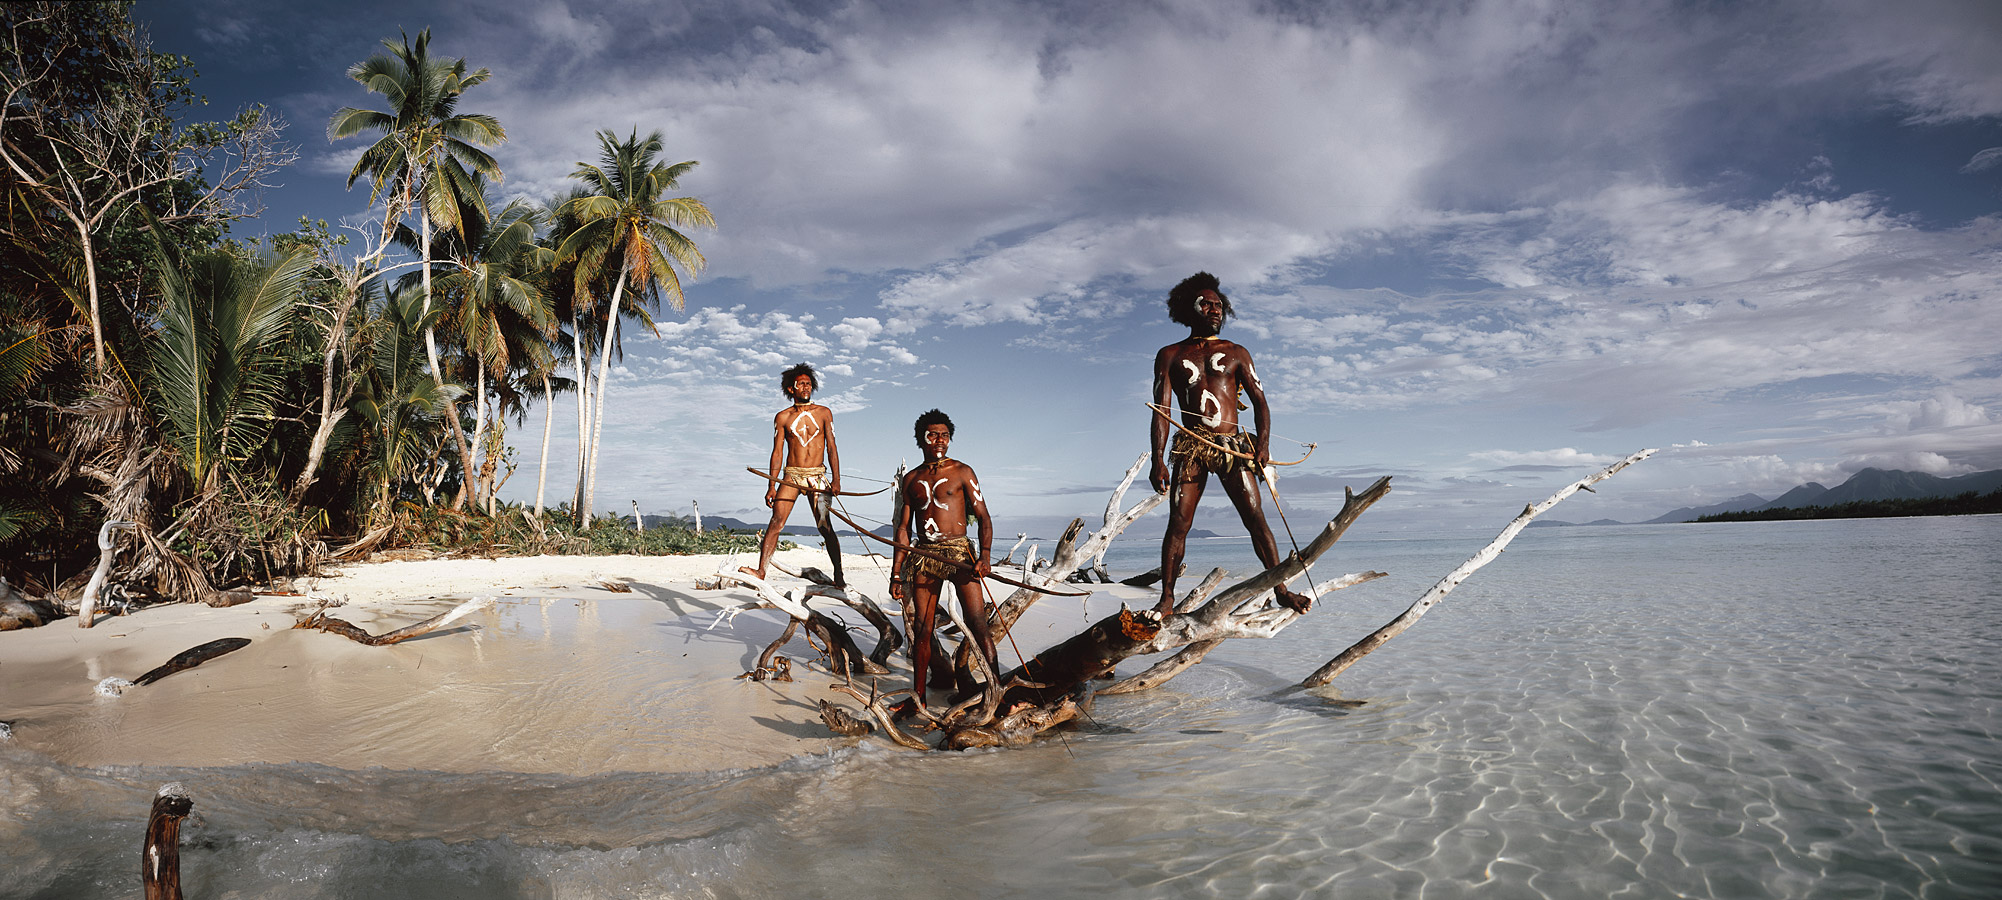 before-they-pass-away-vanishing-tribe-vanuatu-island-vanuatu-02